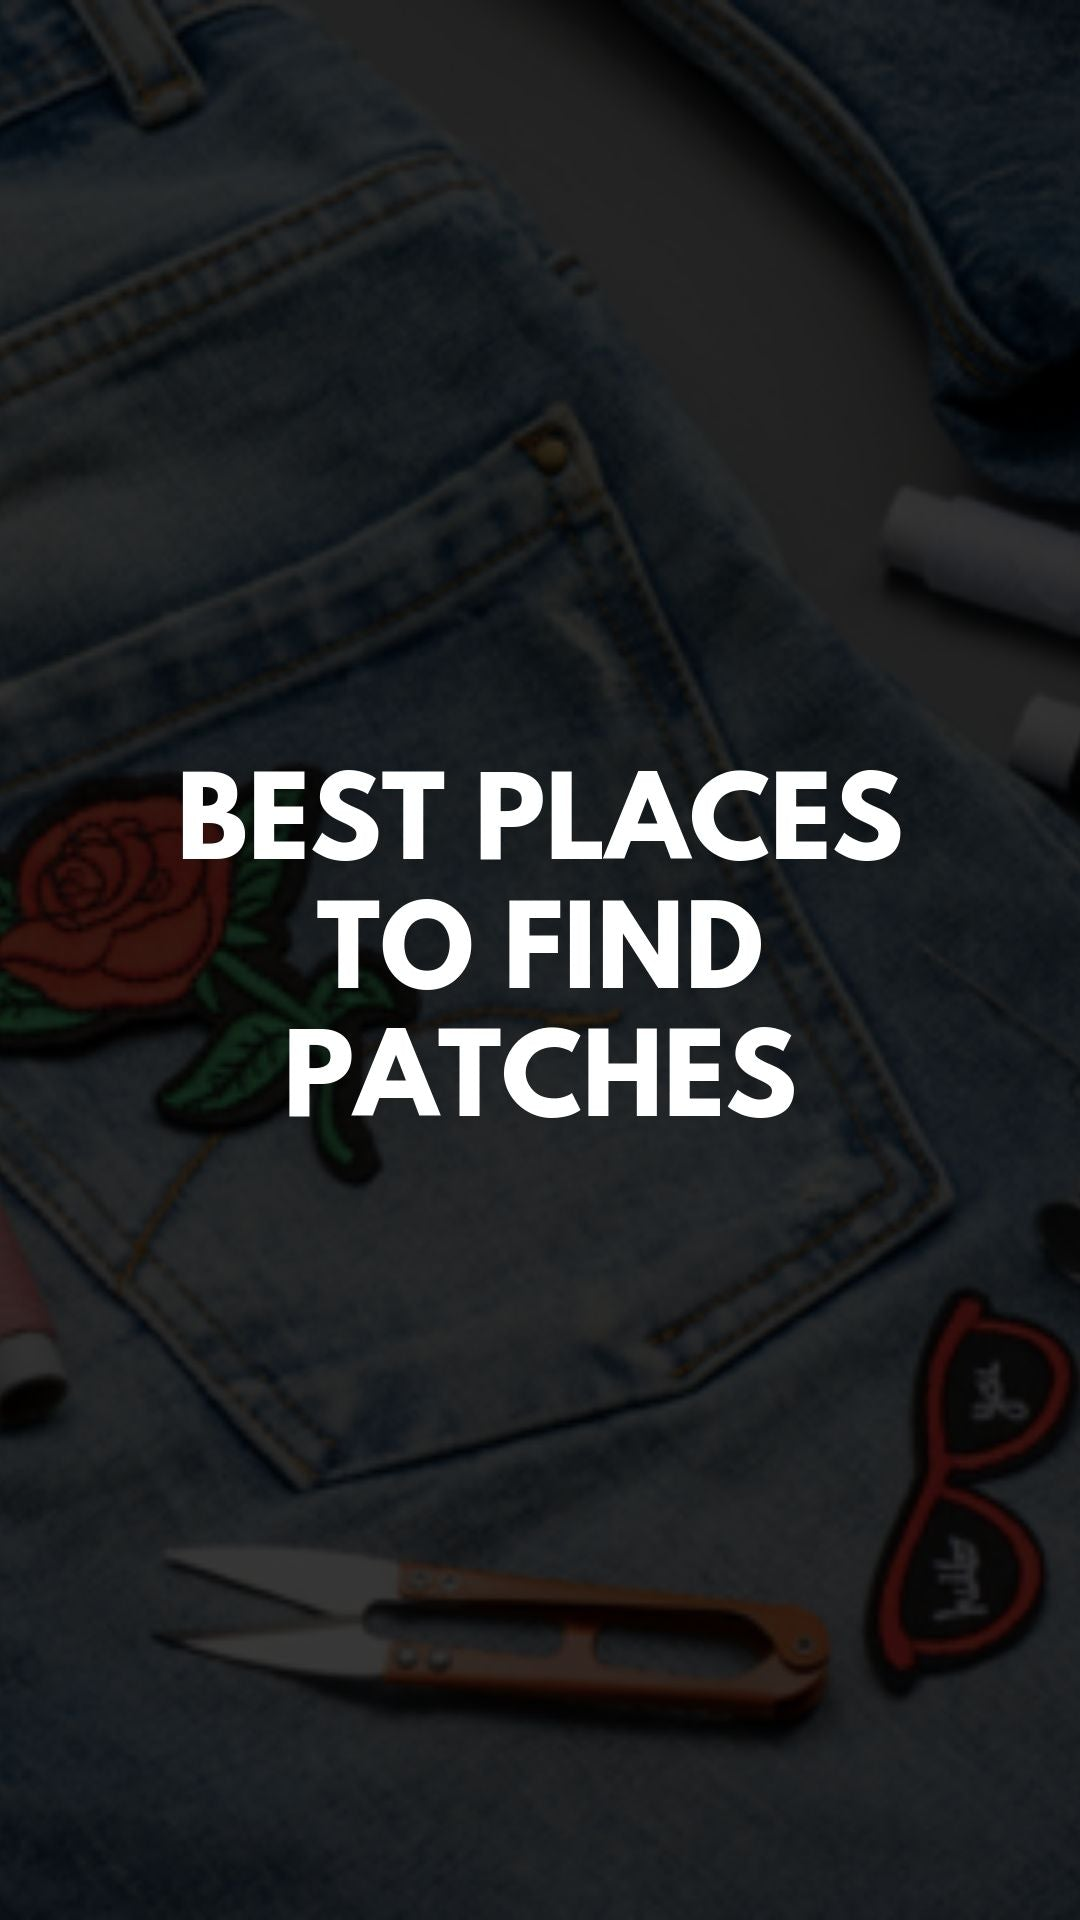 Best Places To Find Patches